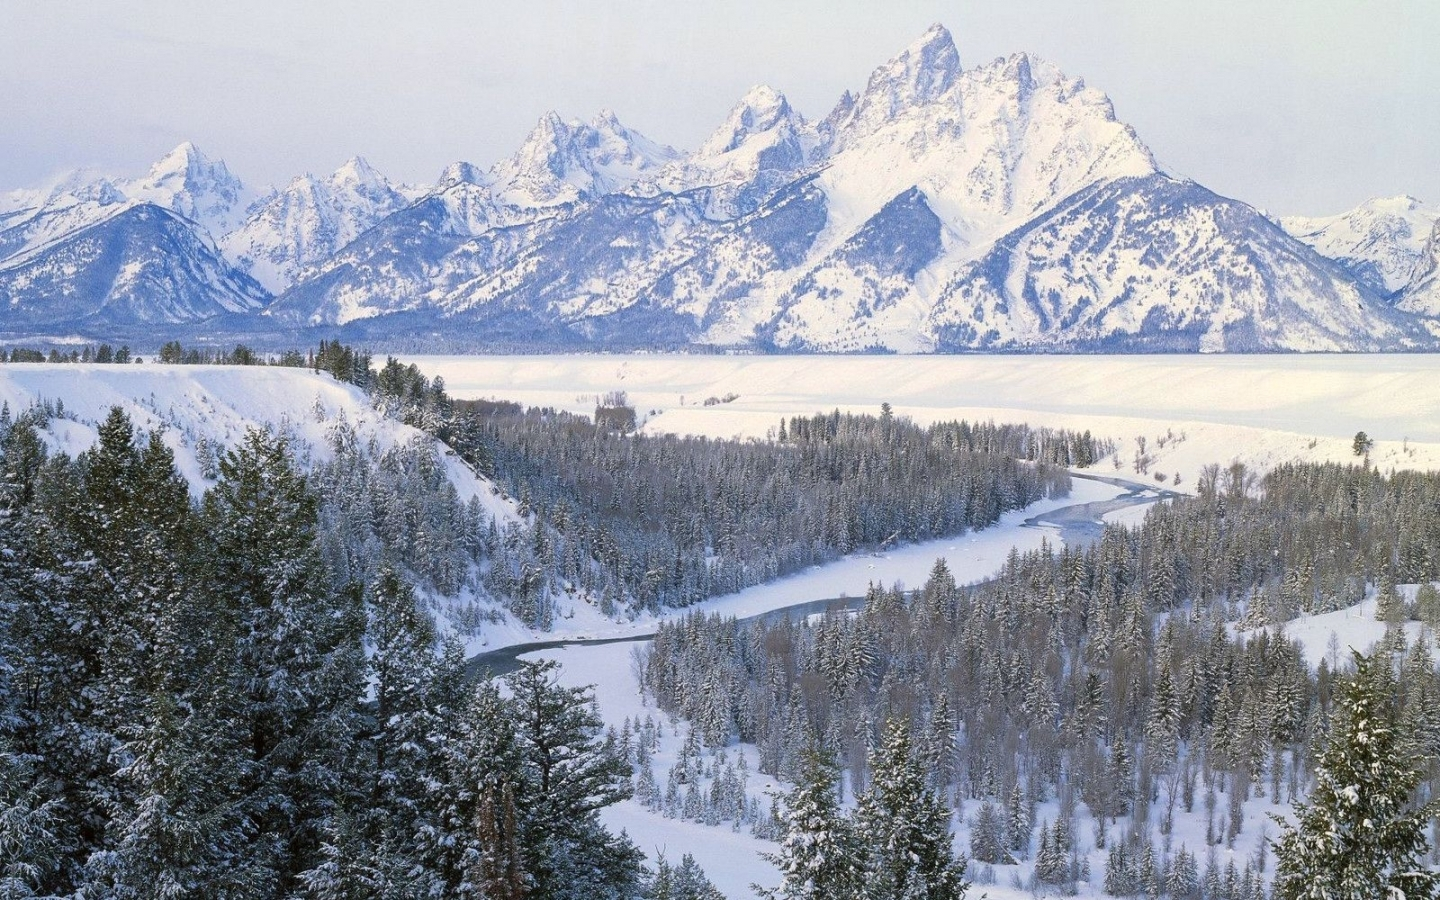 44613 download wallpaper Landscape, Winter, Nature, Mountains, Snow screensavers and pictures for free